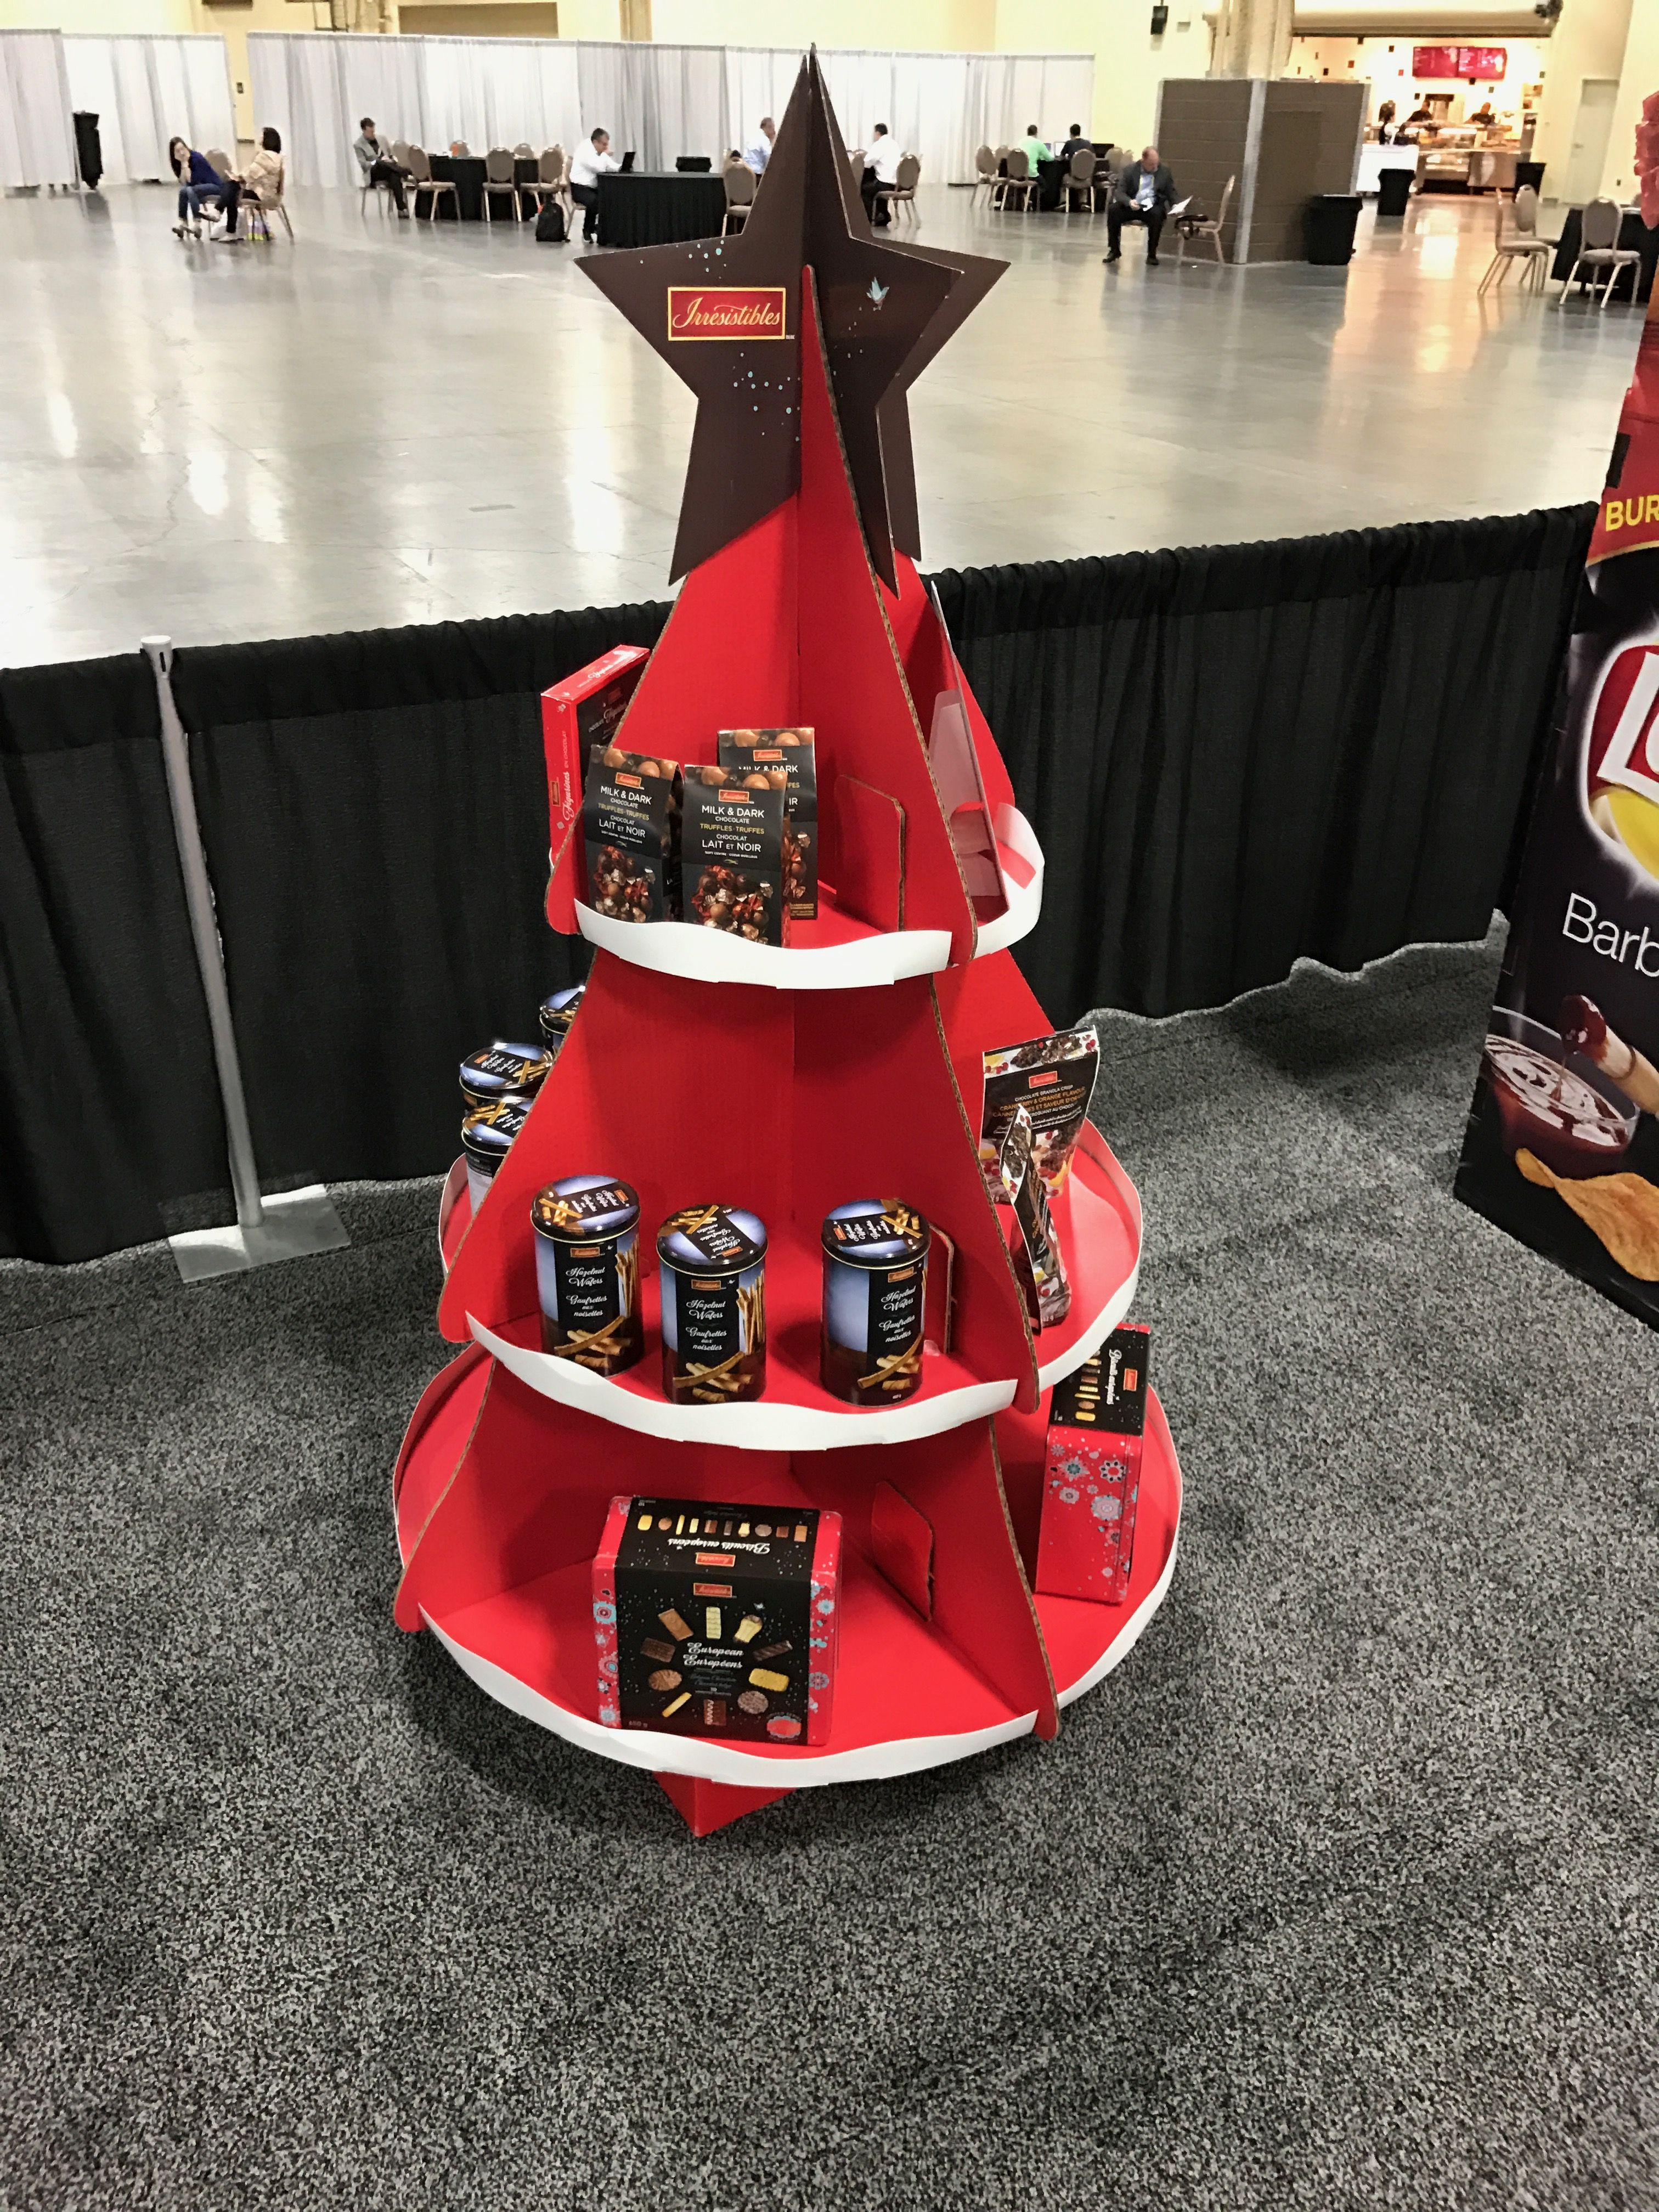 Looking To Purchase This Unit: Irresistibles Christmas Free Standing Unit